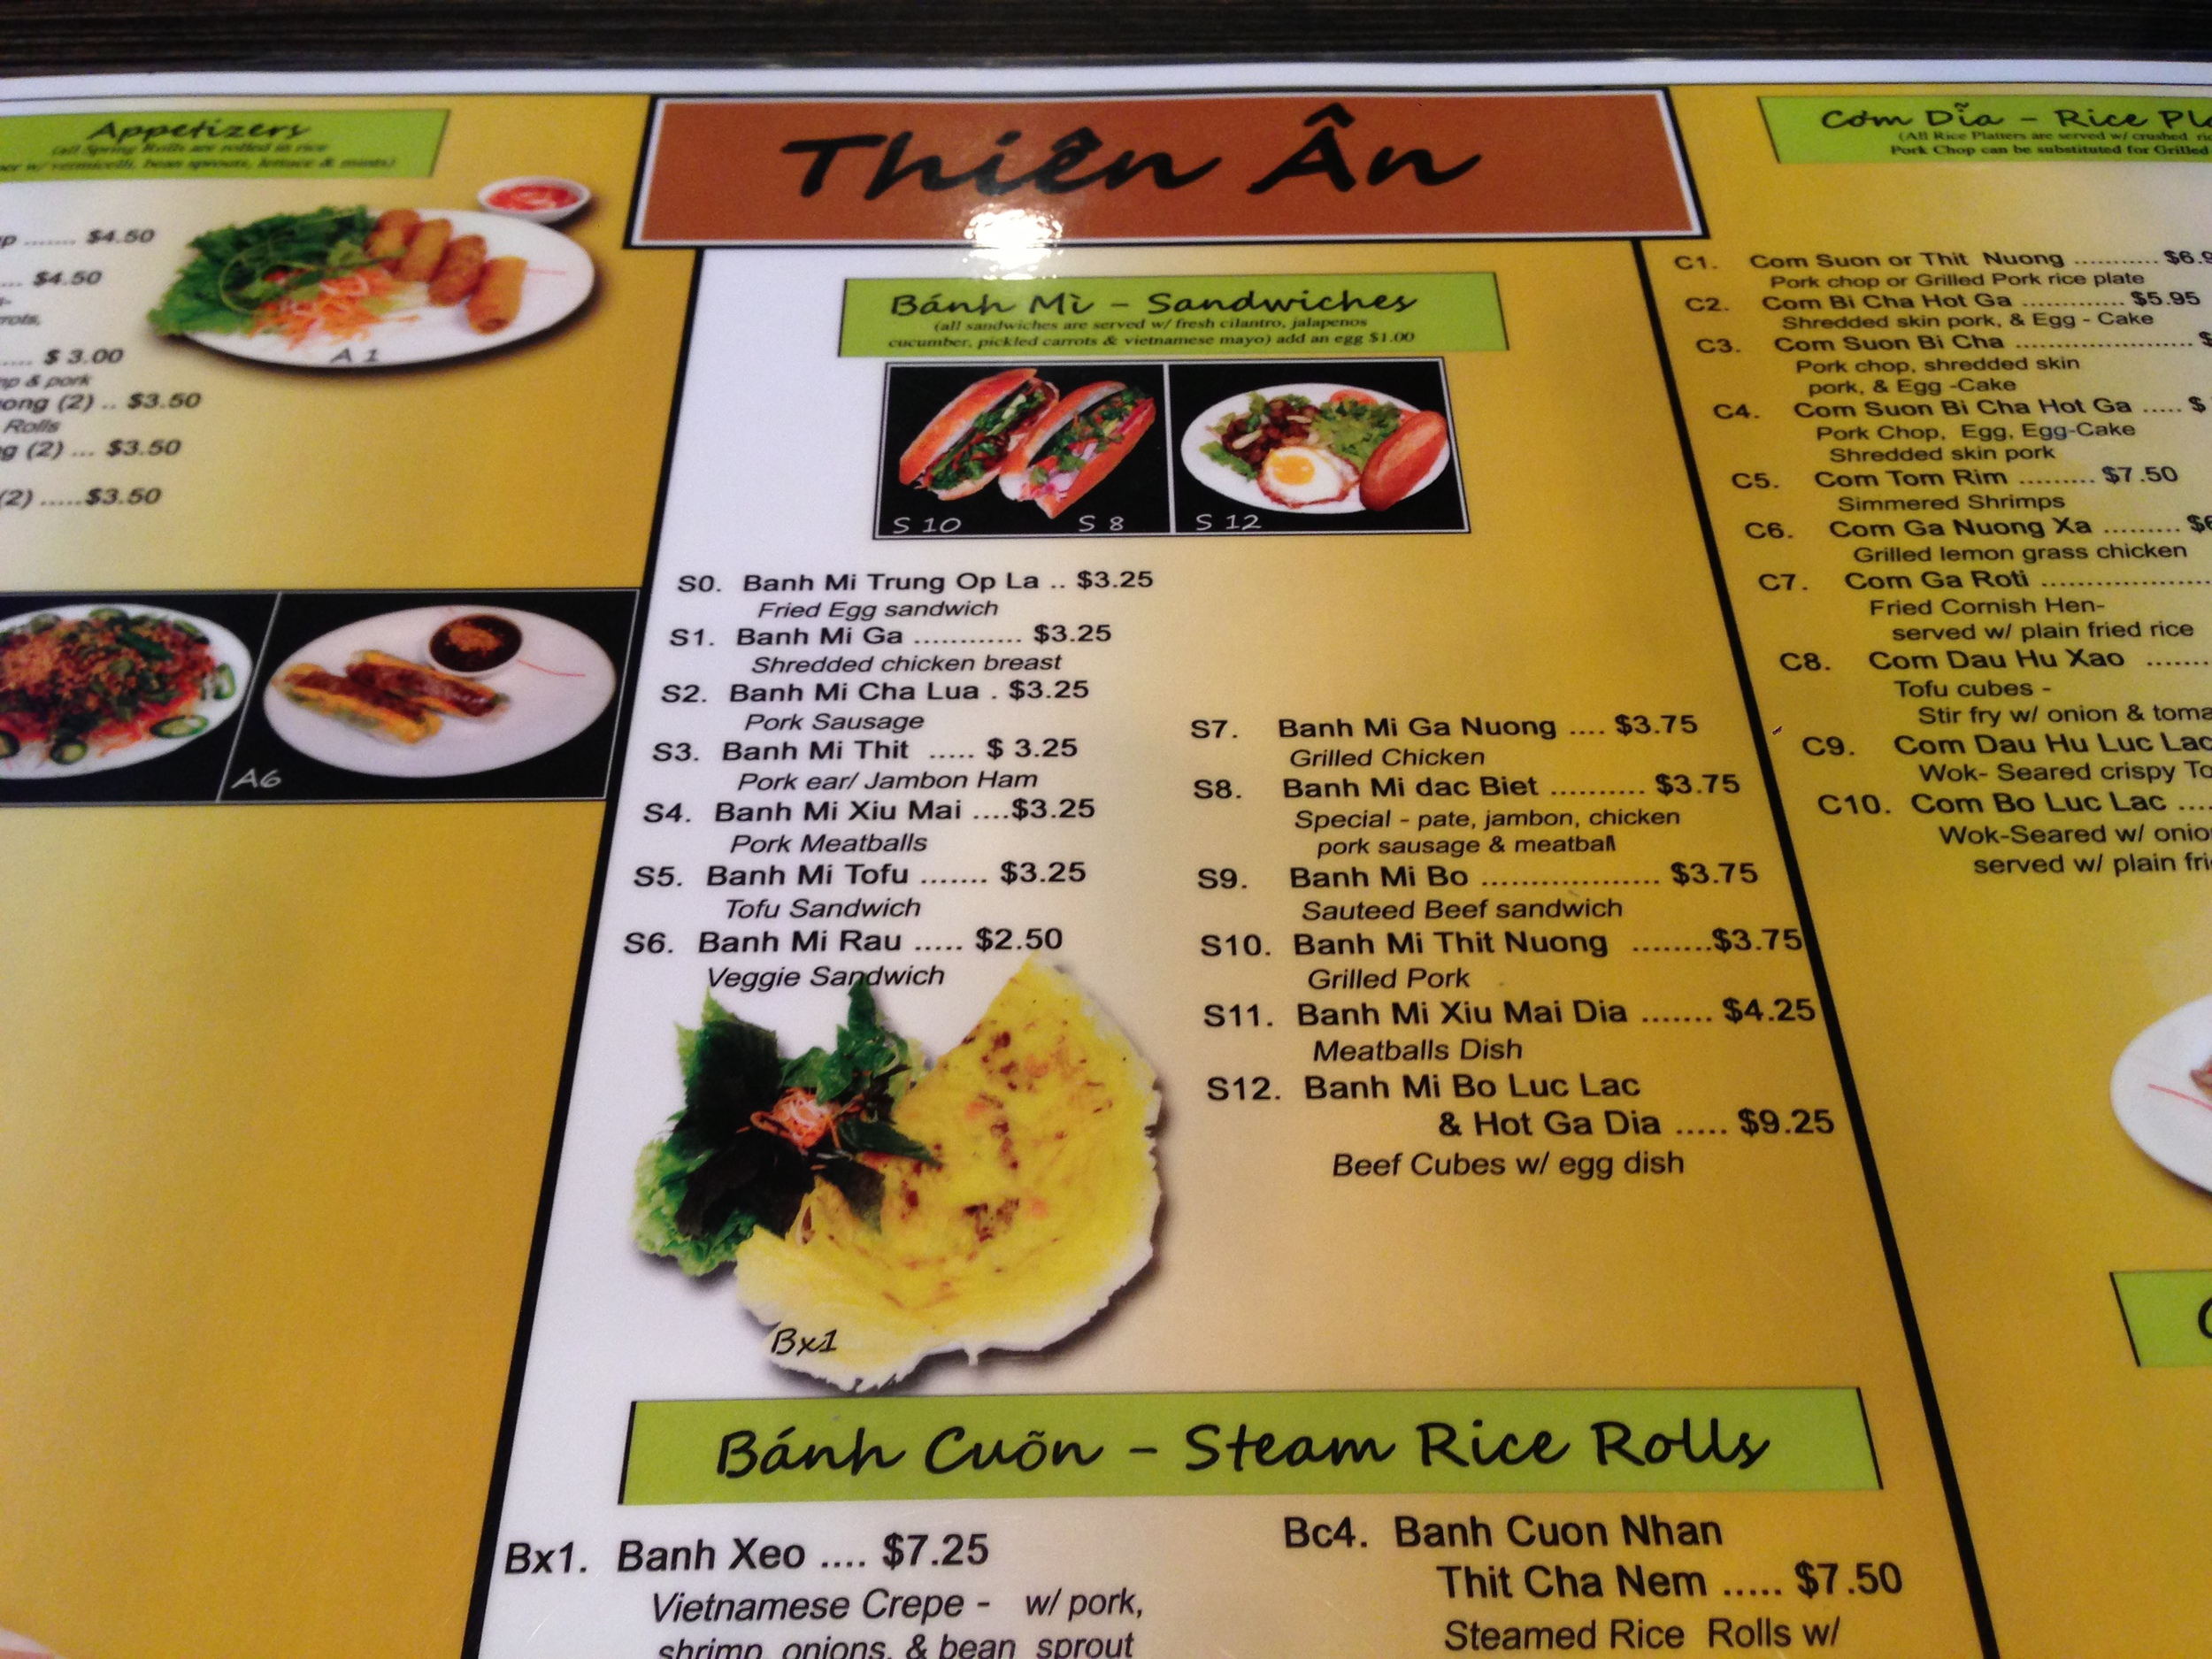 Thien An's menu. So many options, so little time.